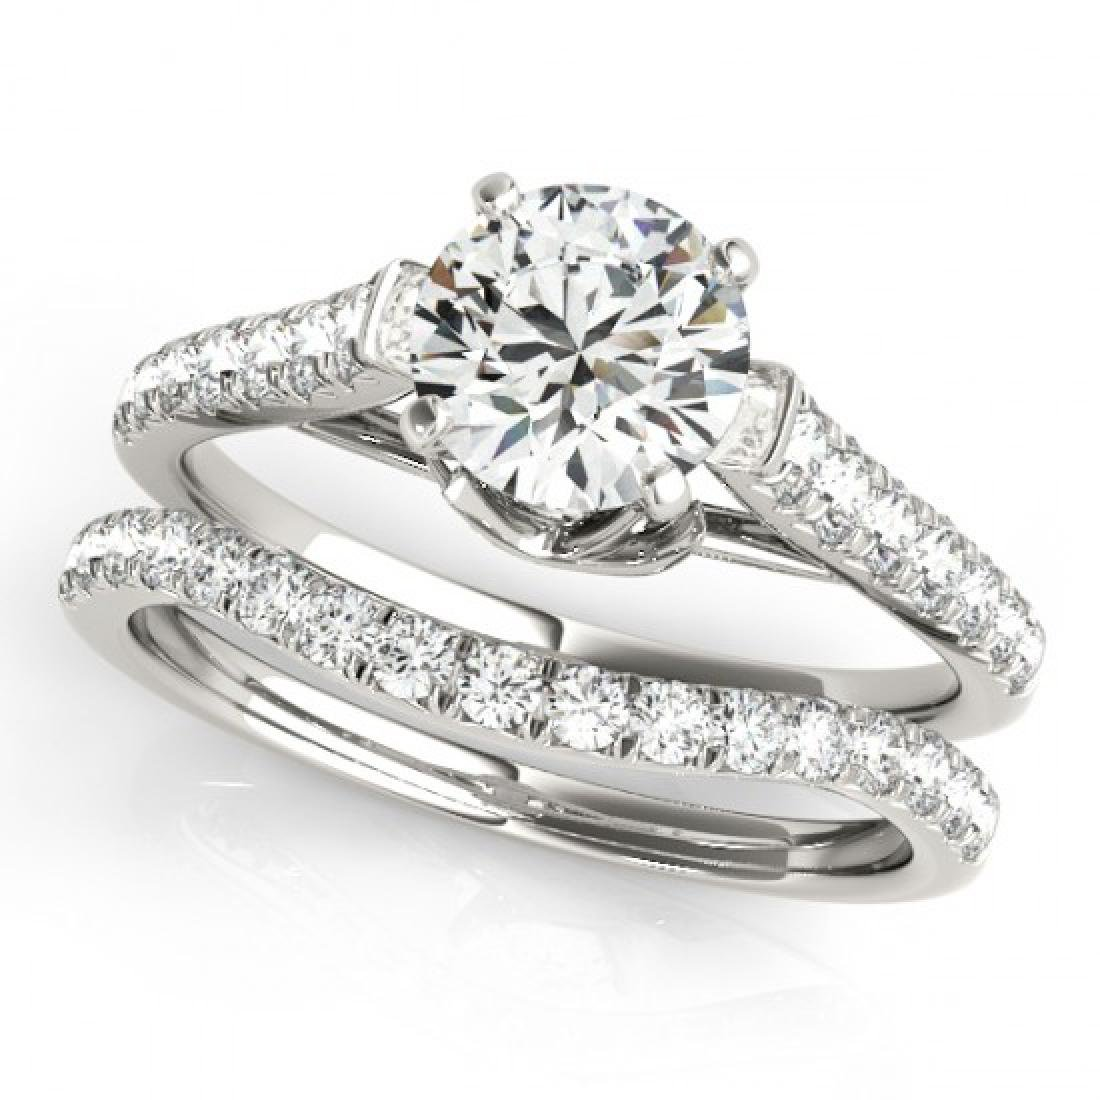 1.33 CTW Certified VS/SI Diamond Solitaire 2Pc Wedding